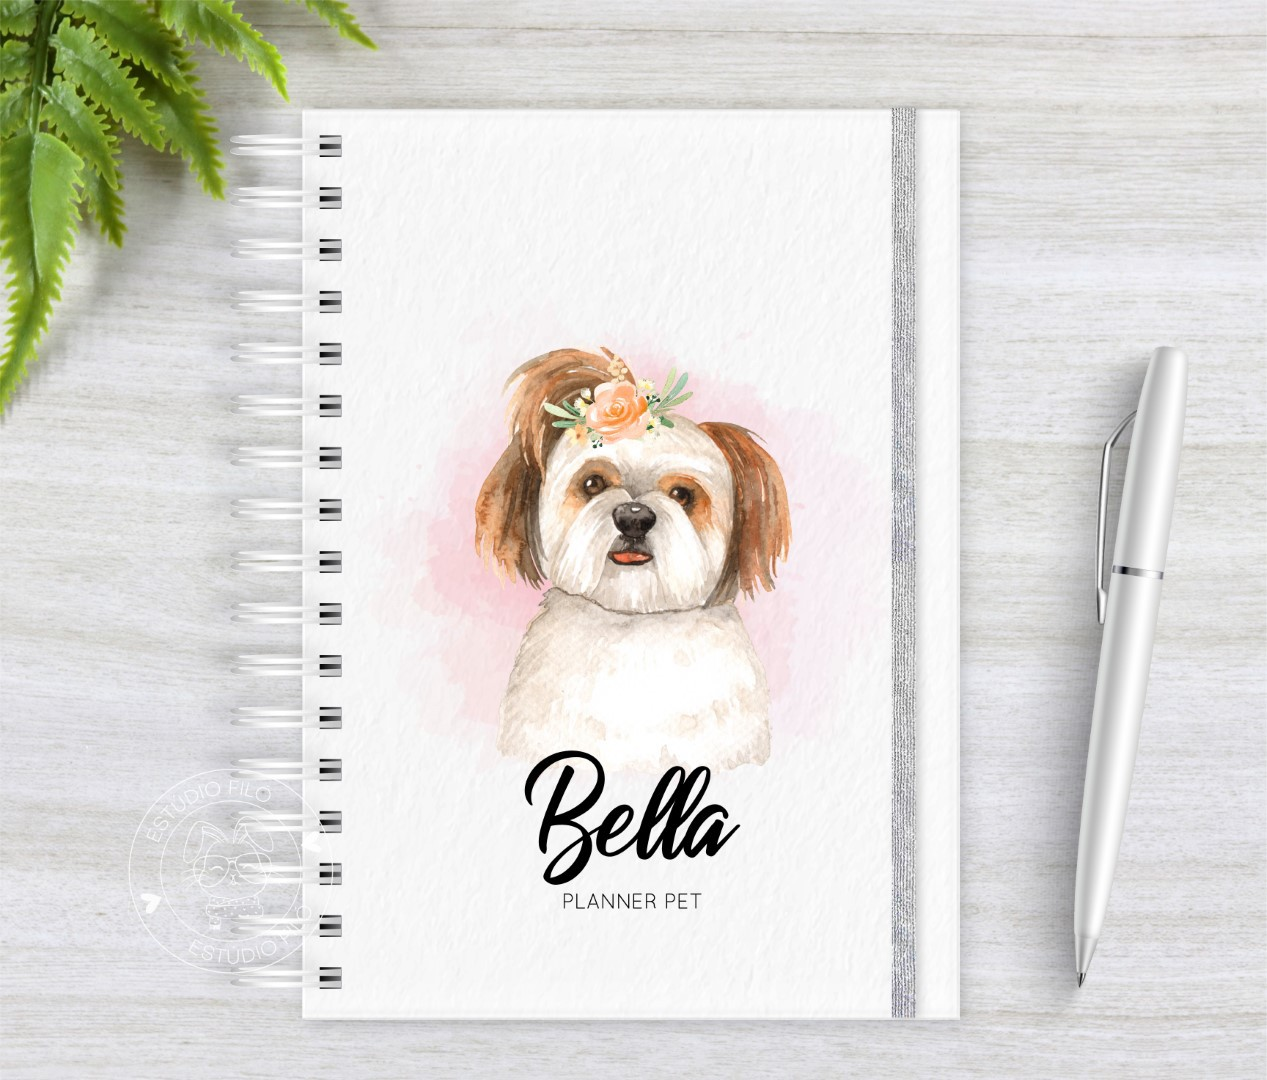 Planner PET aquarela